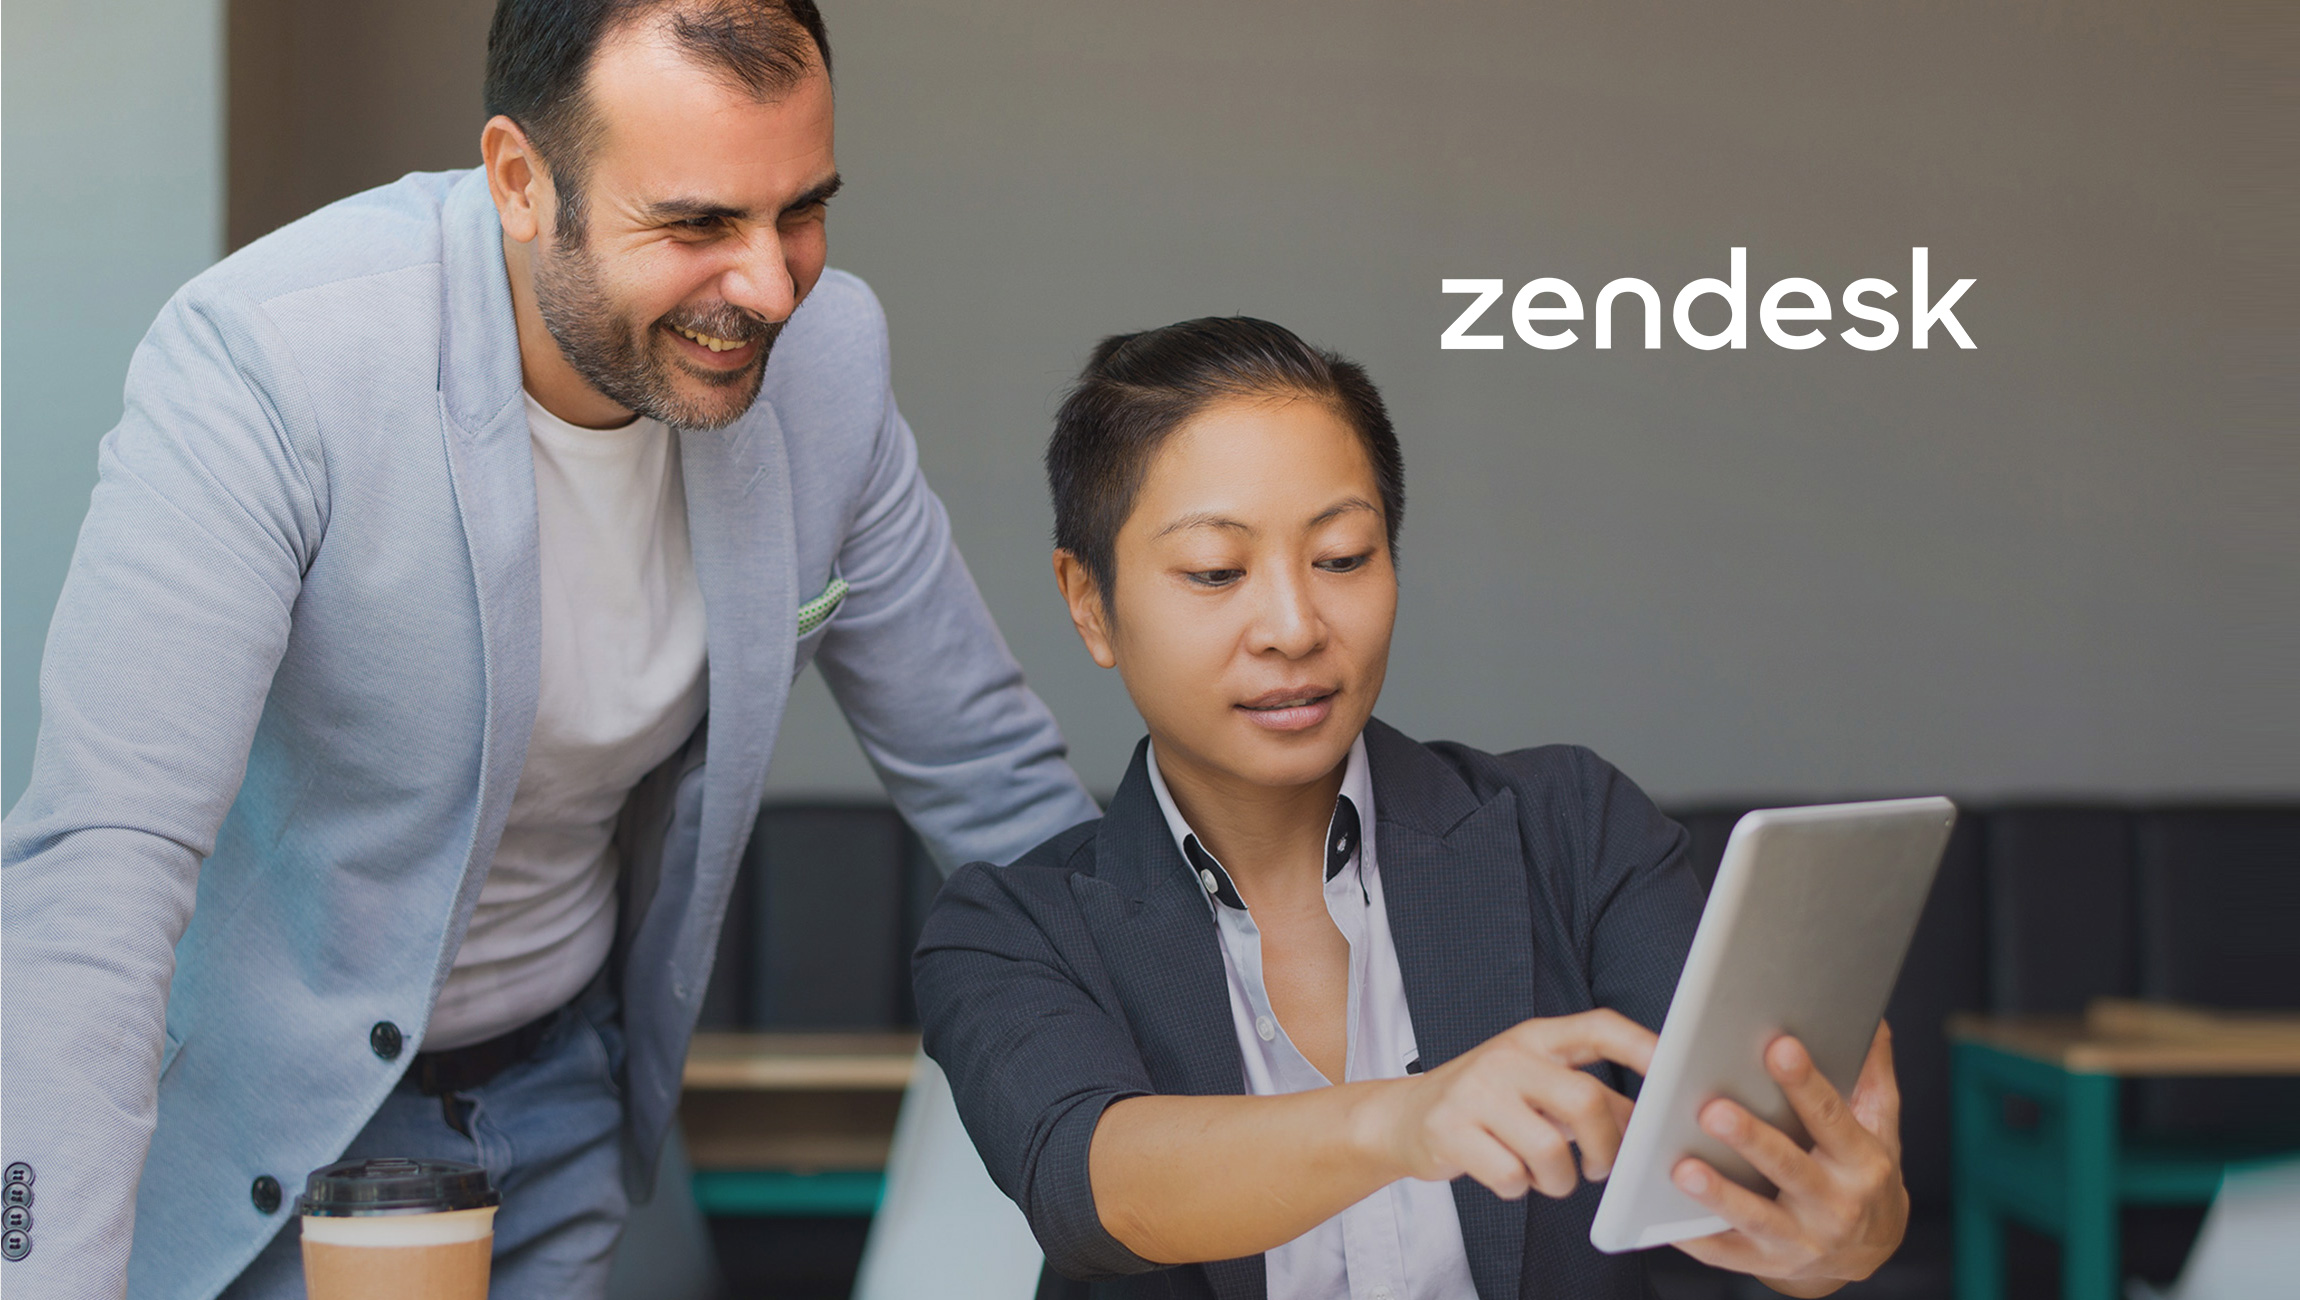 Zendesk Hires First Chief Customer Officer, Expands Executive Bench with New CIO and SVP of Product Management